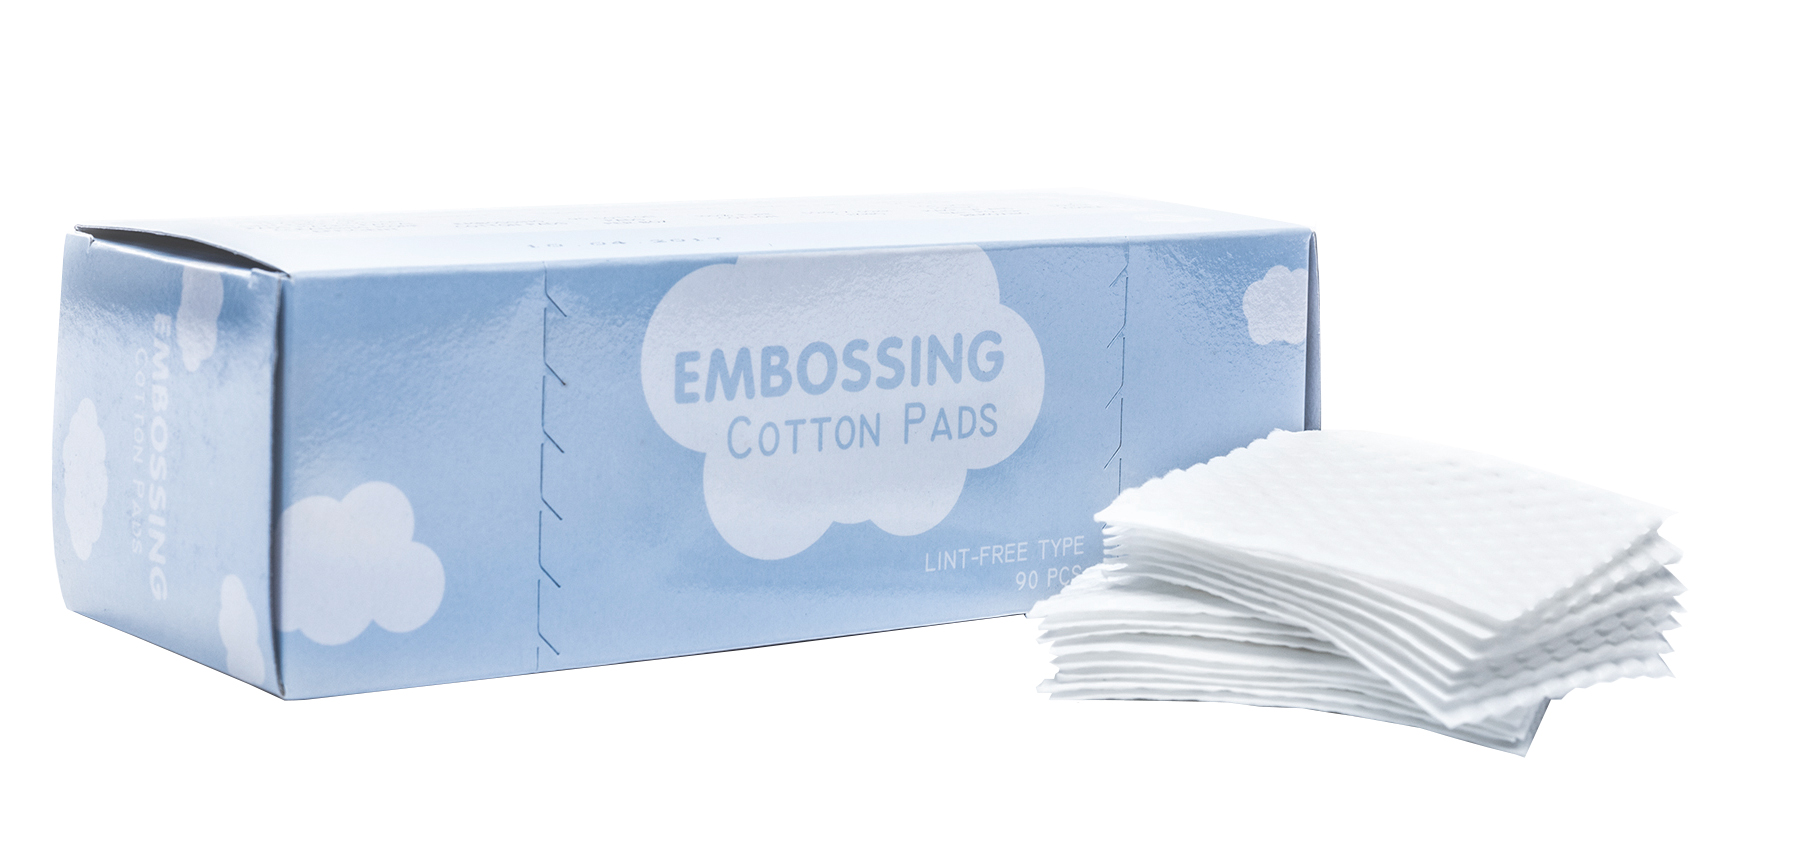 Lint free cotton pads